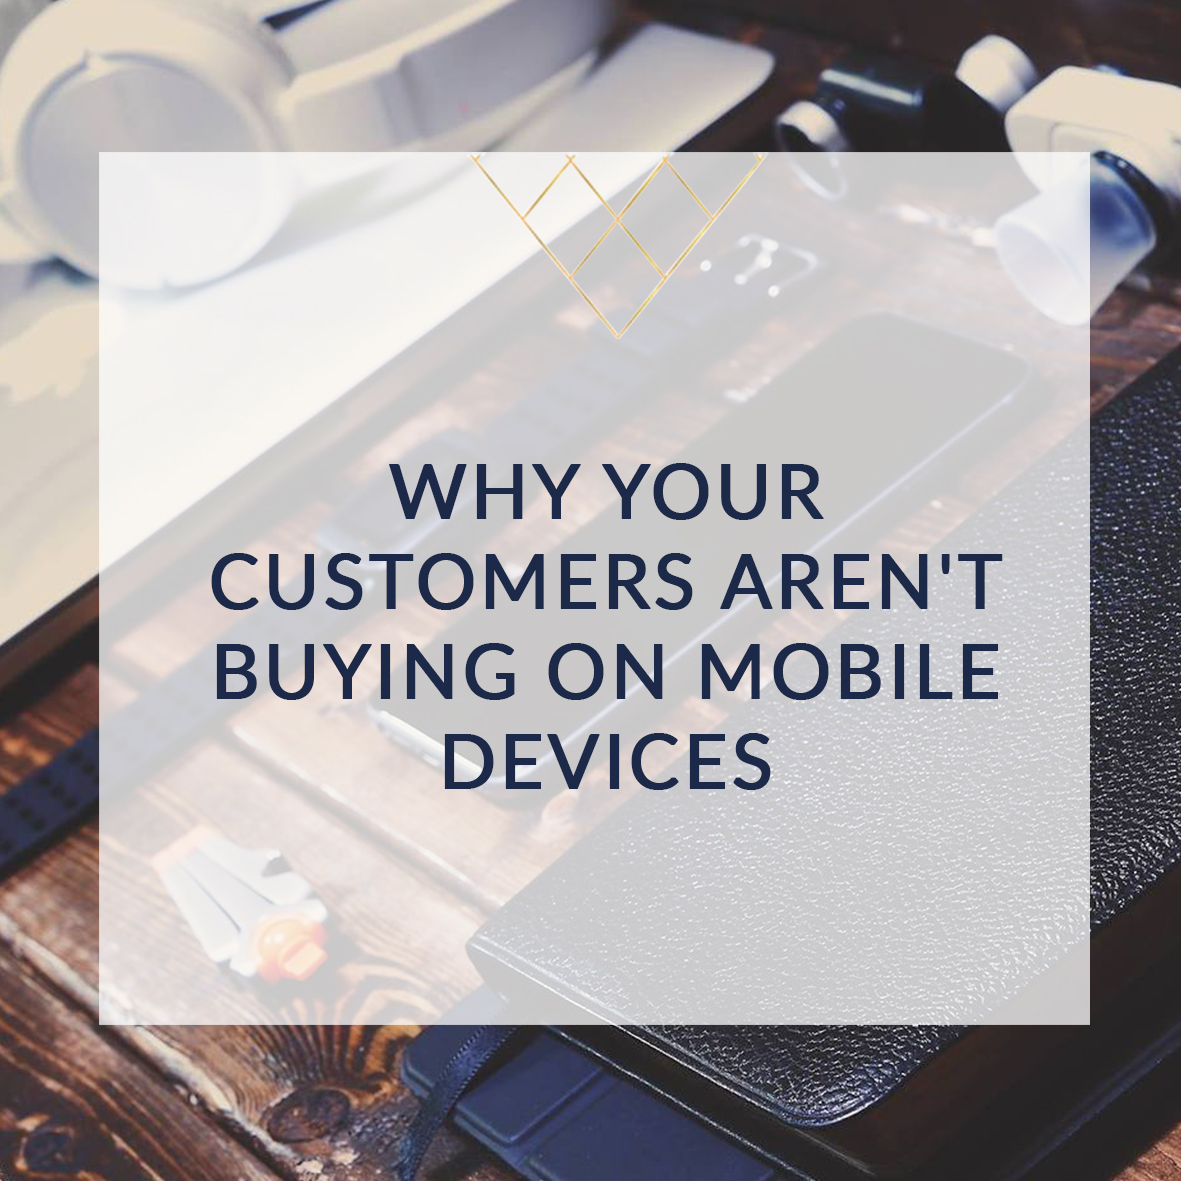 Why your customers aren't buying on mobile devices SQUARE